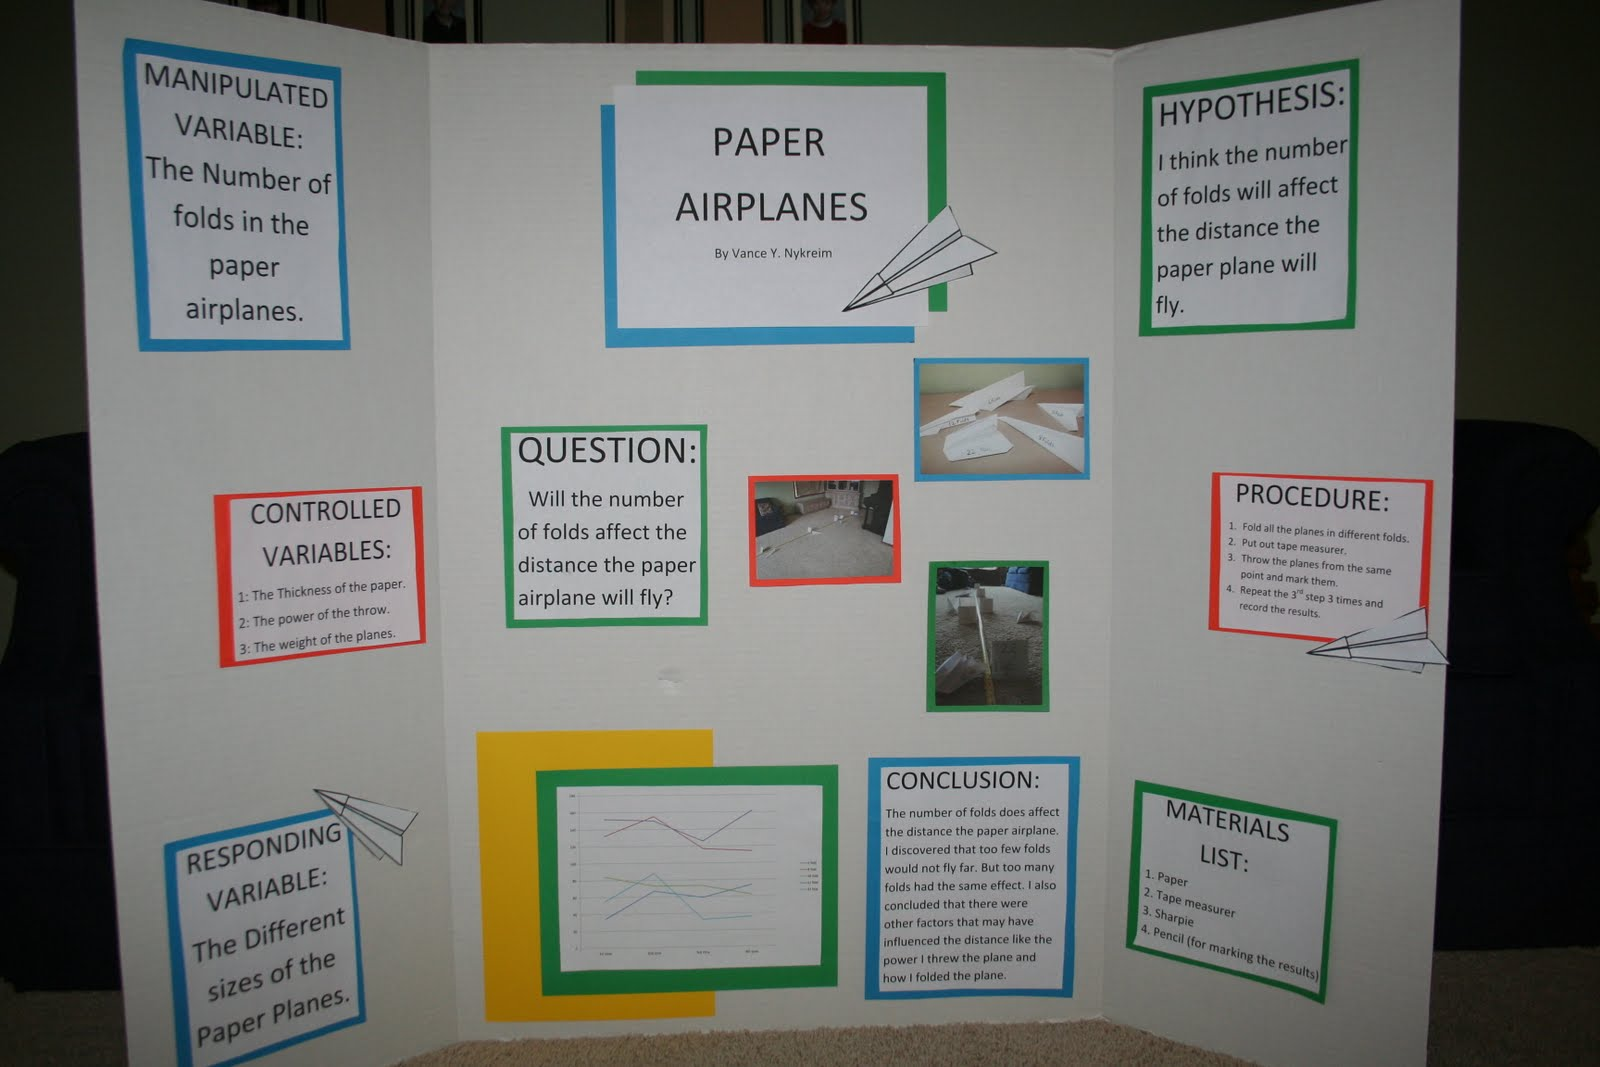 cool science projects for 6th graders Award winning middle school science fair projects (6-8) free project examples by grade level see also: award winning 6th grade science fair project examples award winning 7th grade science fair project examples.